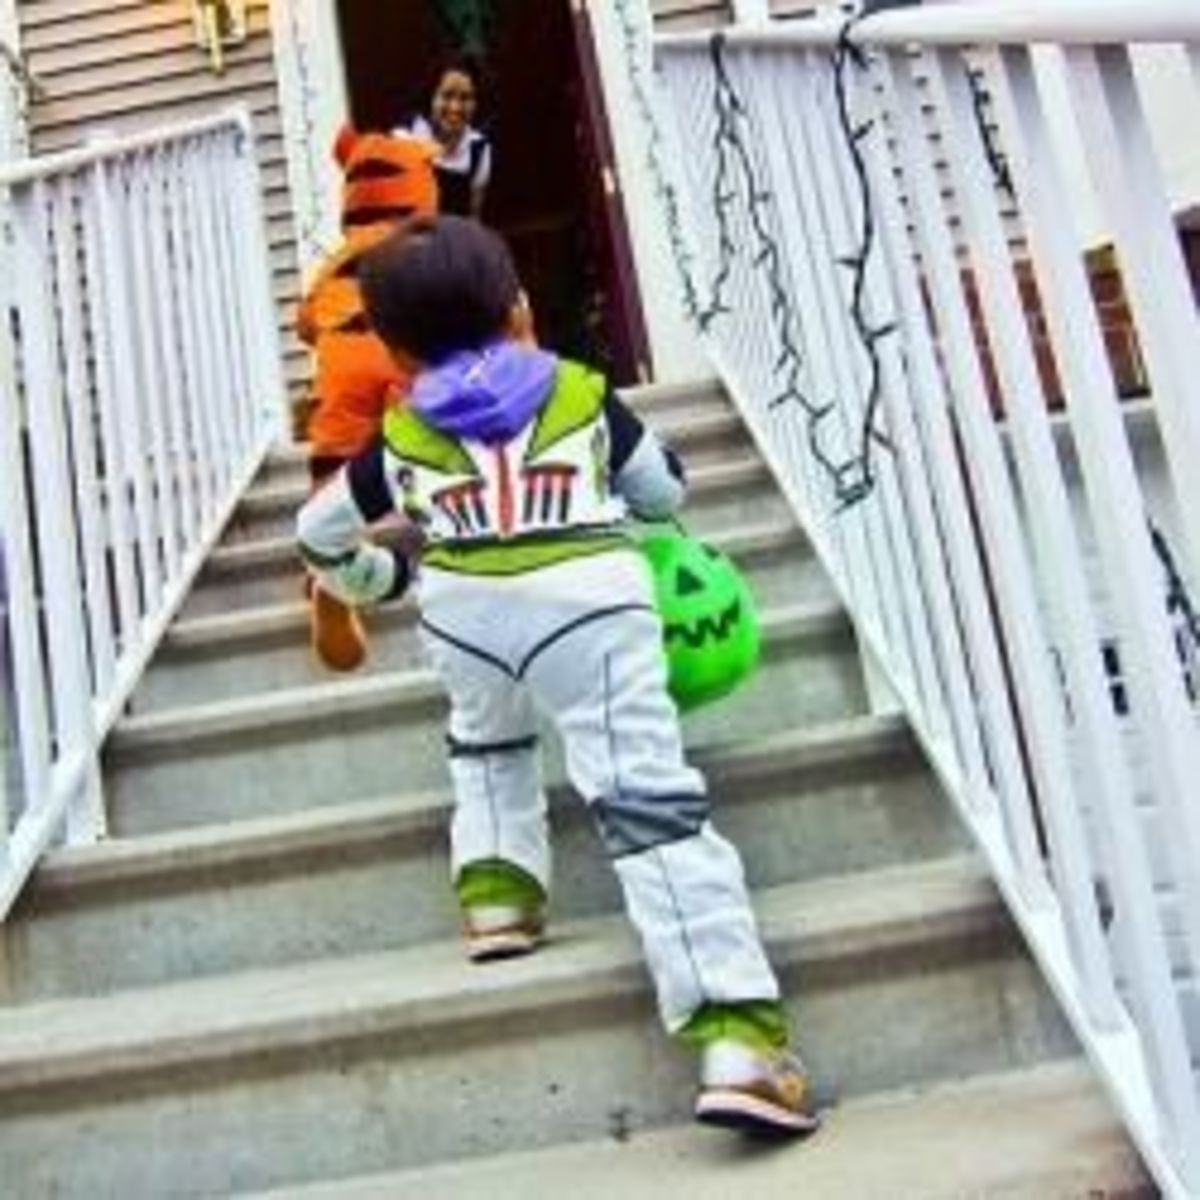 Tips For Passing Out Candy to Trick-or-Treaters on Halloween